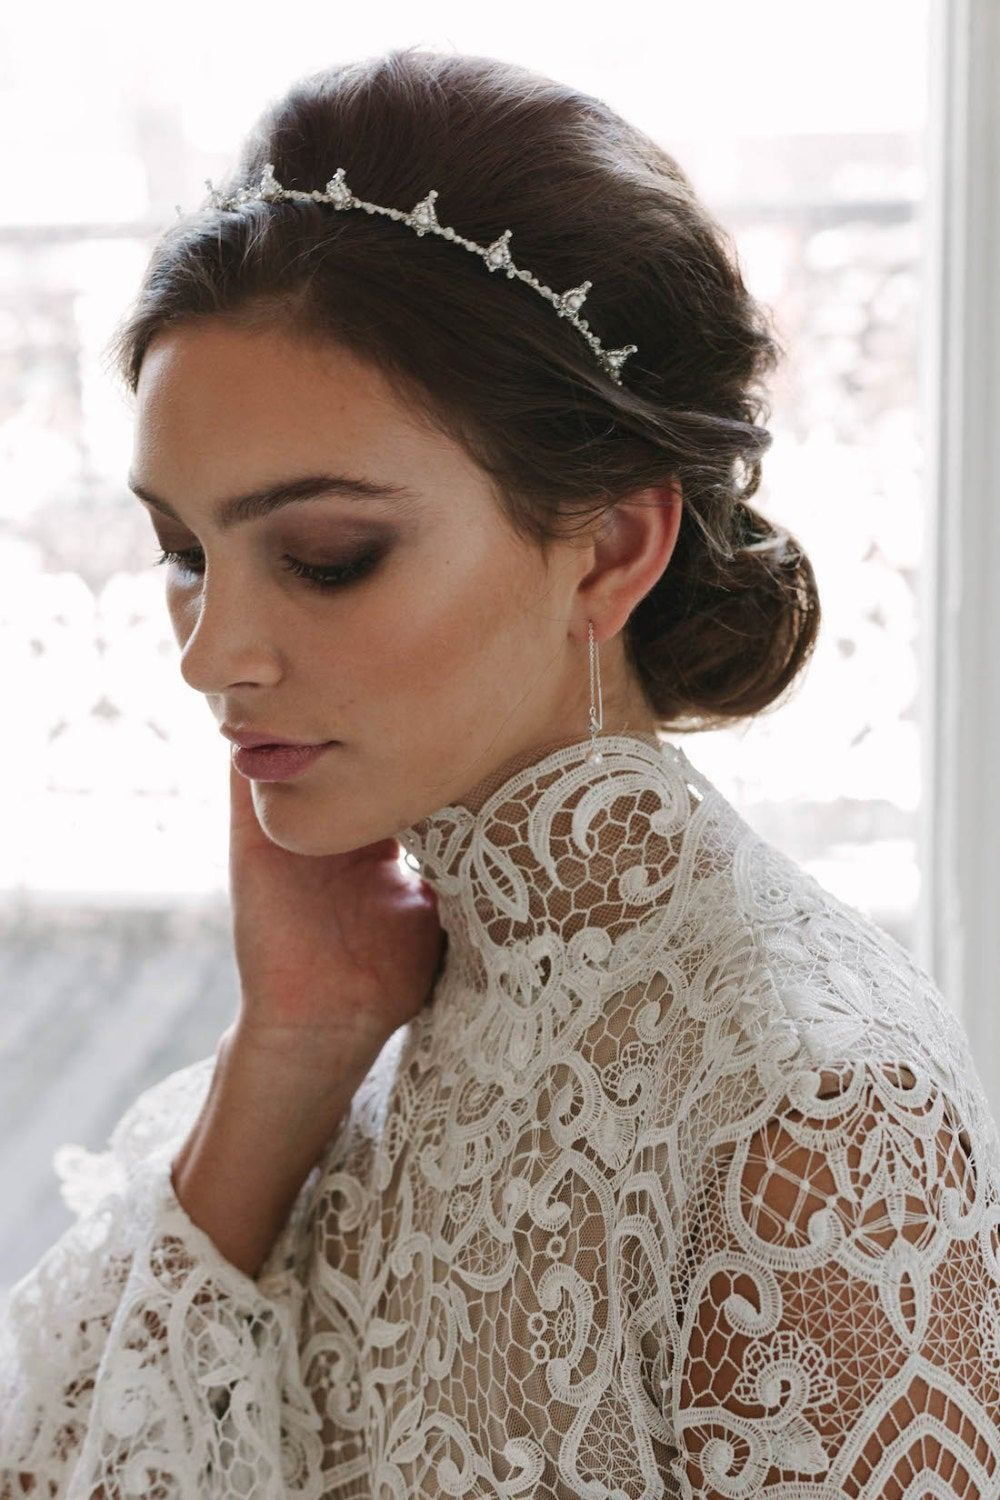 15 bridal crowns & tiaras that are SO unique (& absolutely stunning!)